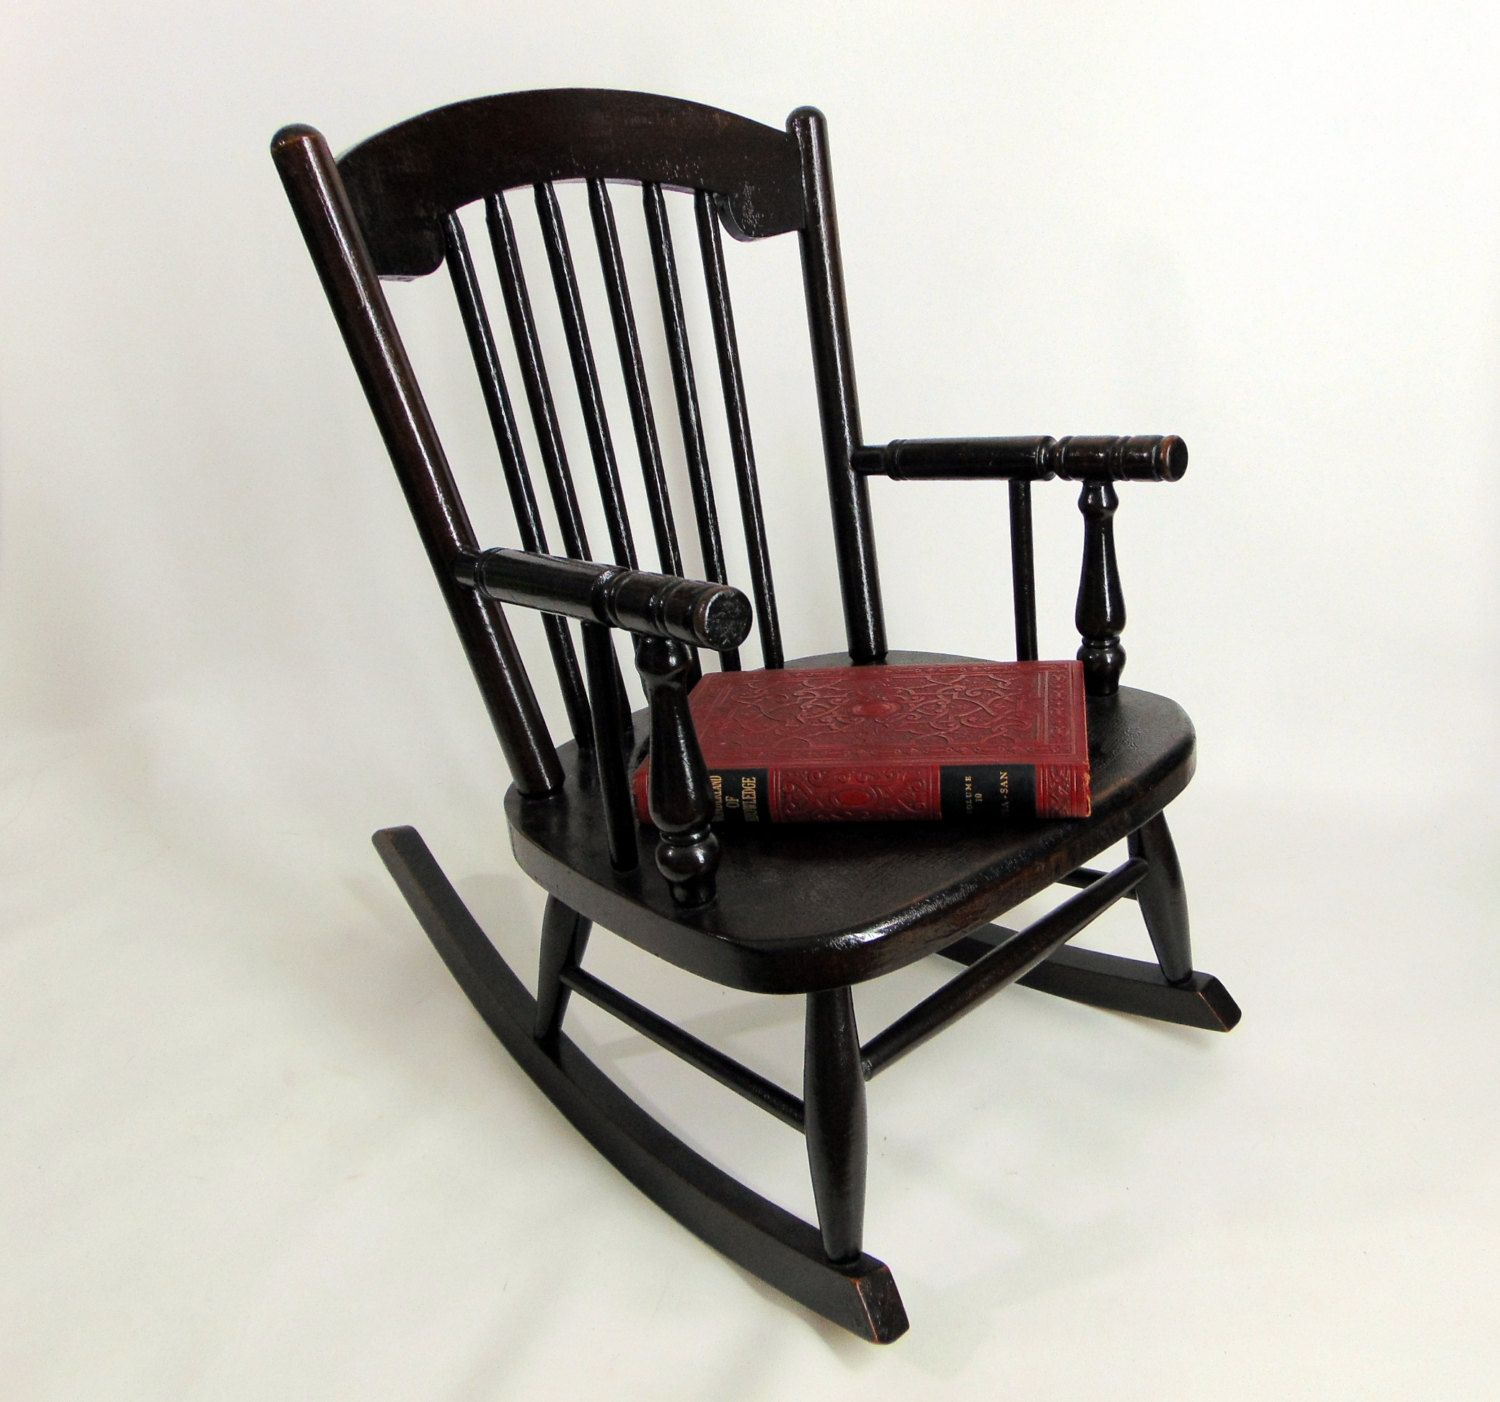 $222.00 SALE was 395 antique 1919 Heywood Wakefield Childs Spindle Boston  Rocker Windsor Rocking Chair Marshall - $222.00 SALE Was 395 Antique 1919 Heywood Wakefield Childs Spindle